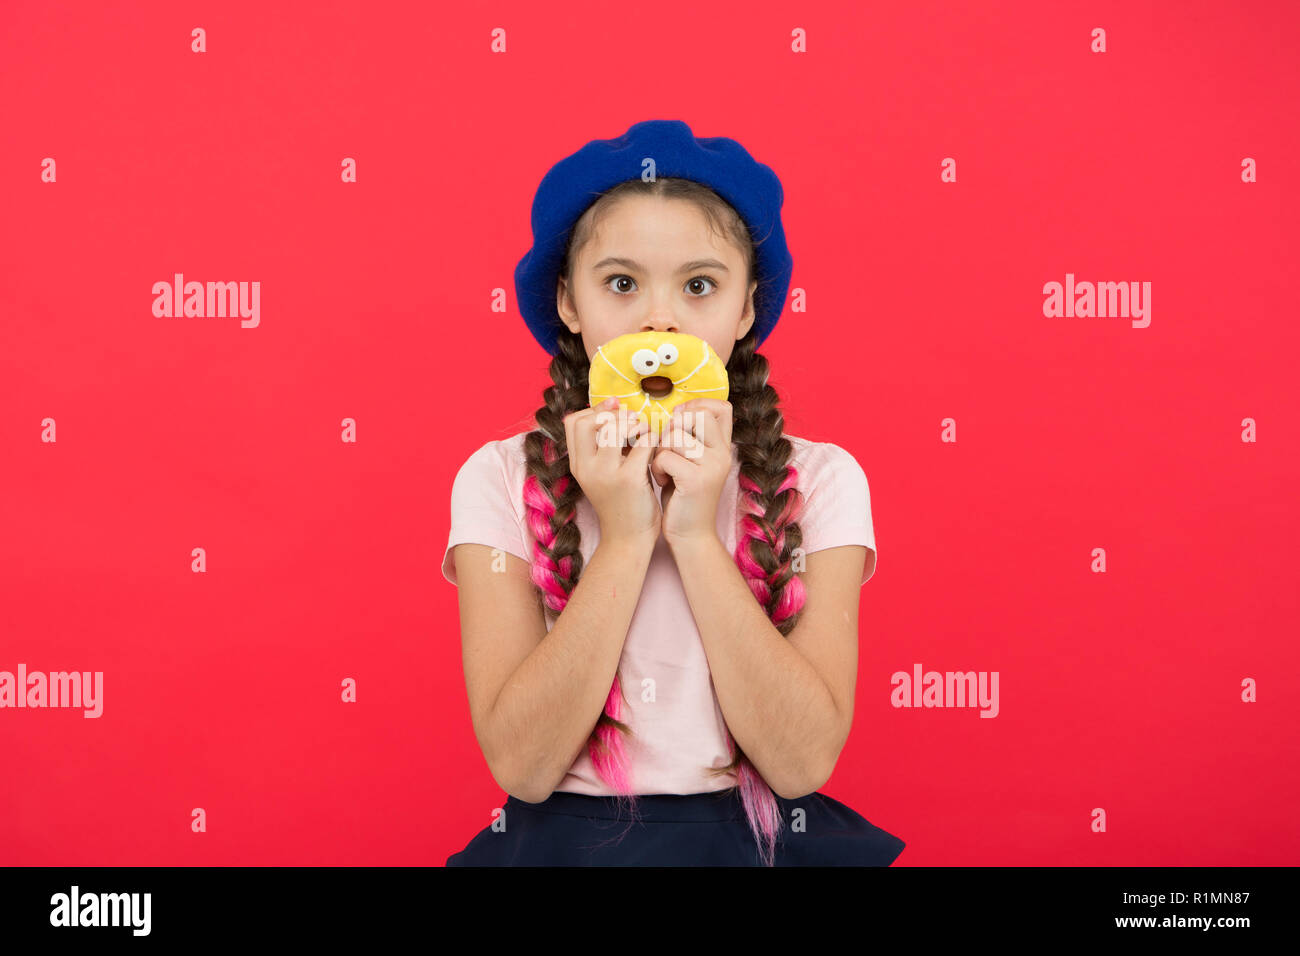 Impossible to resist fresh made donut. Girl hold glazed cute donut in hand red background. Kid smiling girl ready to eat donut. Sweets shop and bakery concept. Kids huge fans of baked donuts. - Stock Image